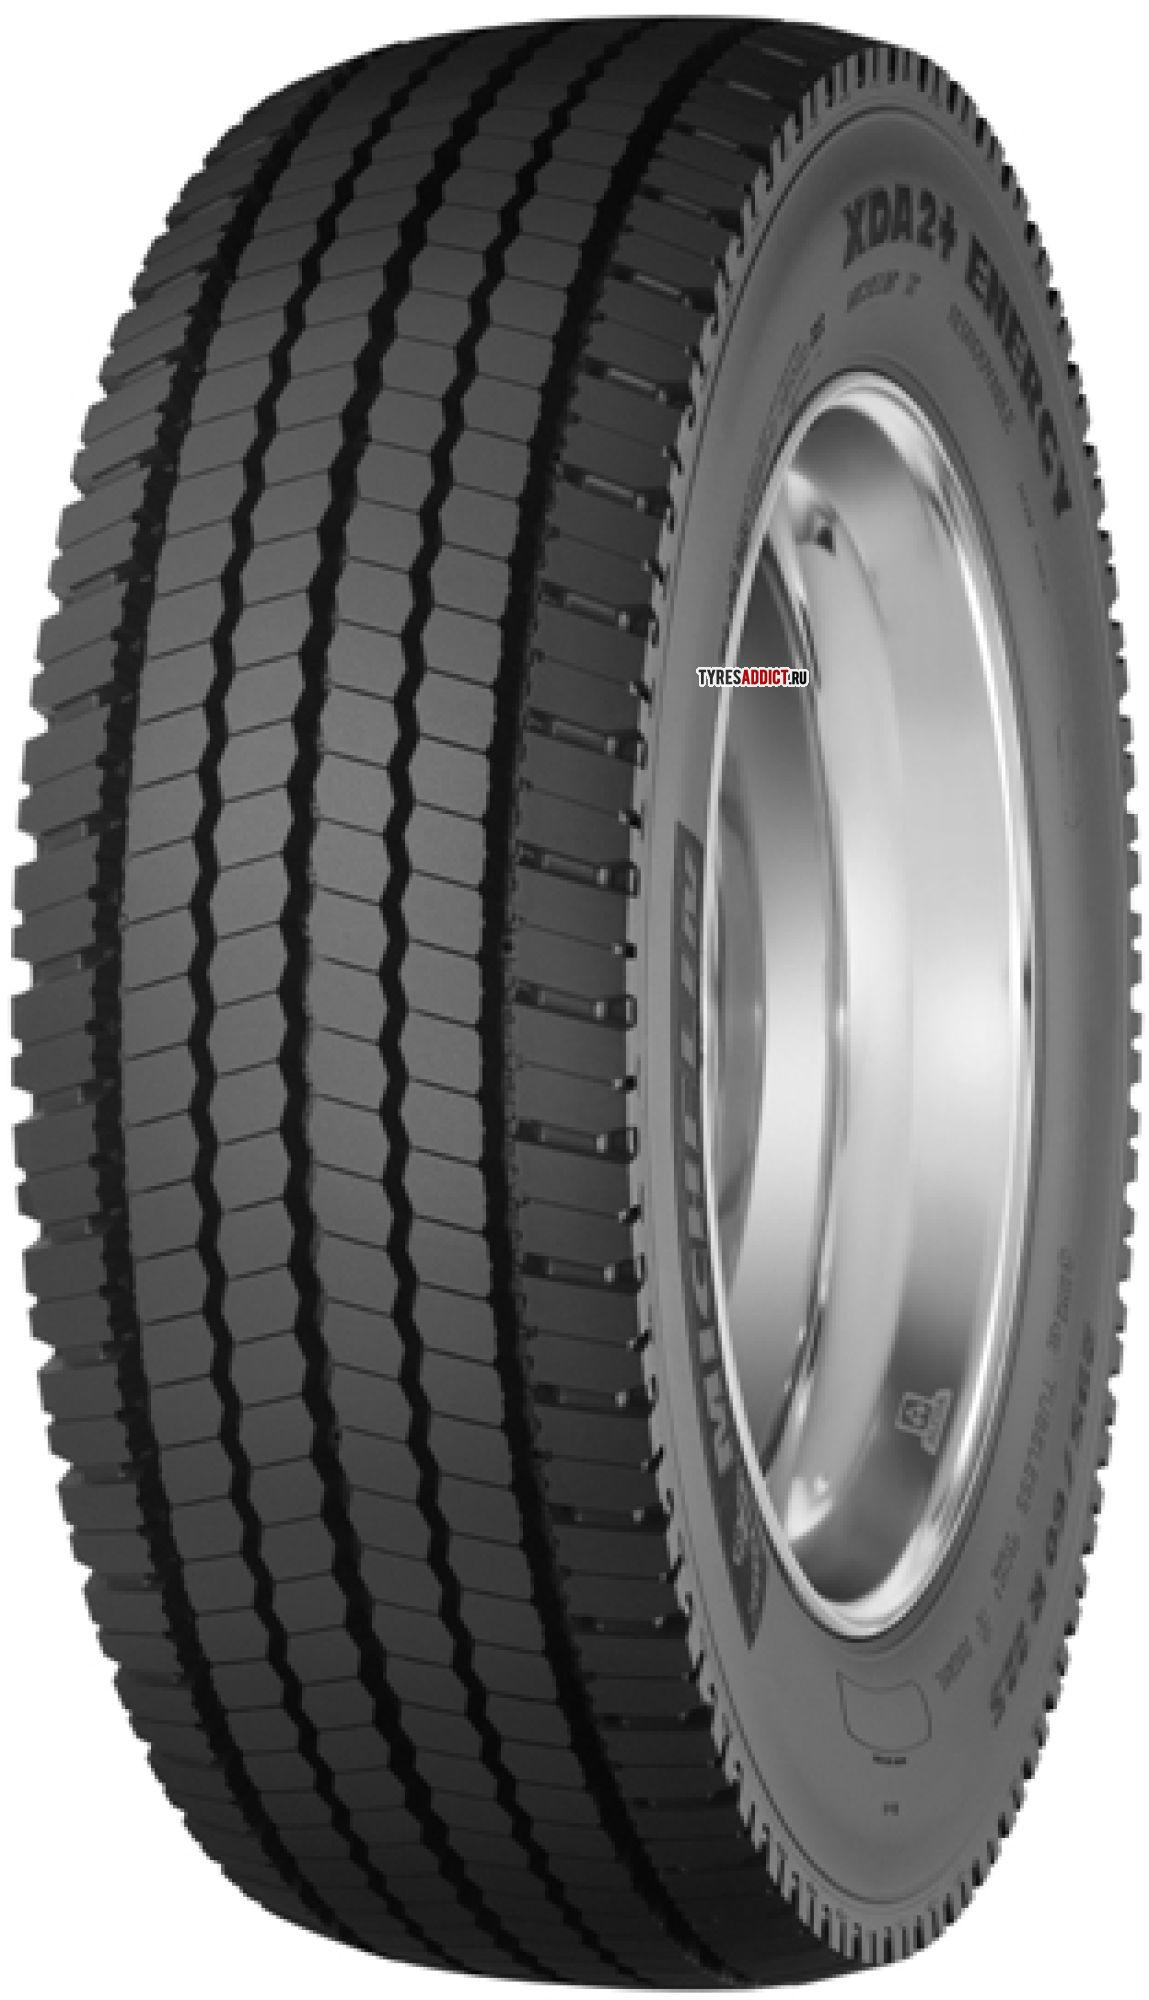 Michelin Truck Tire >> Michelin XDA 2+ Energy. Reviews and prices